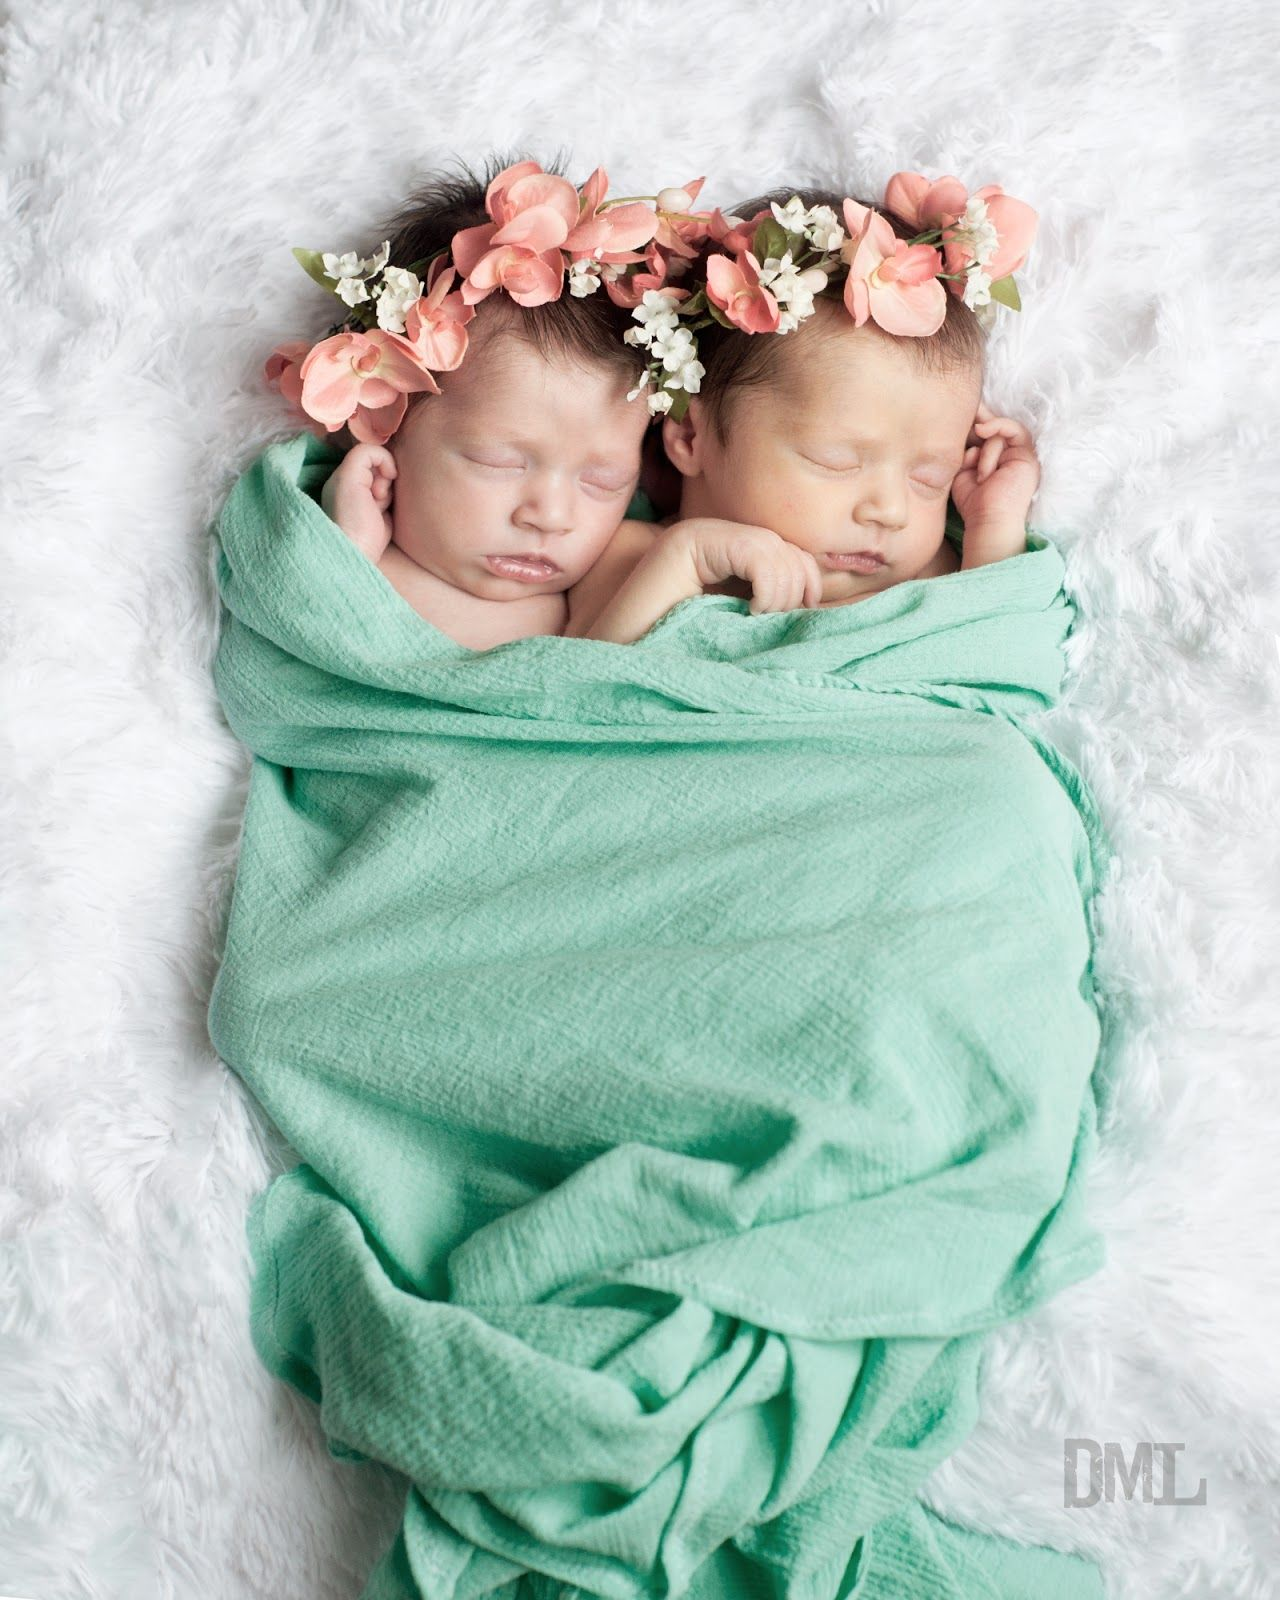 Twins Girl Baby New Born Newborn Photography